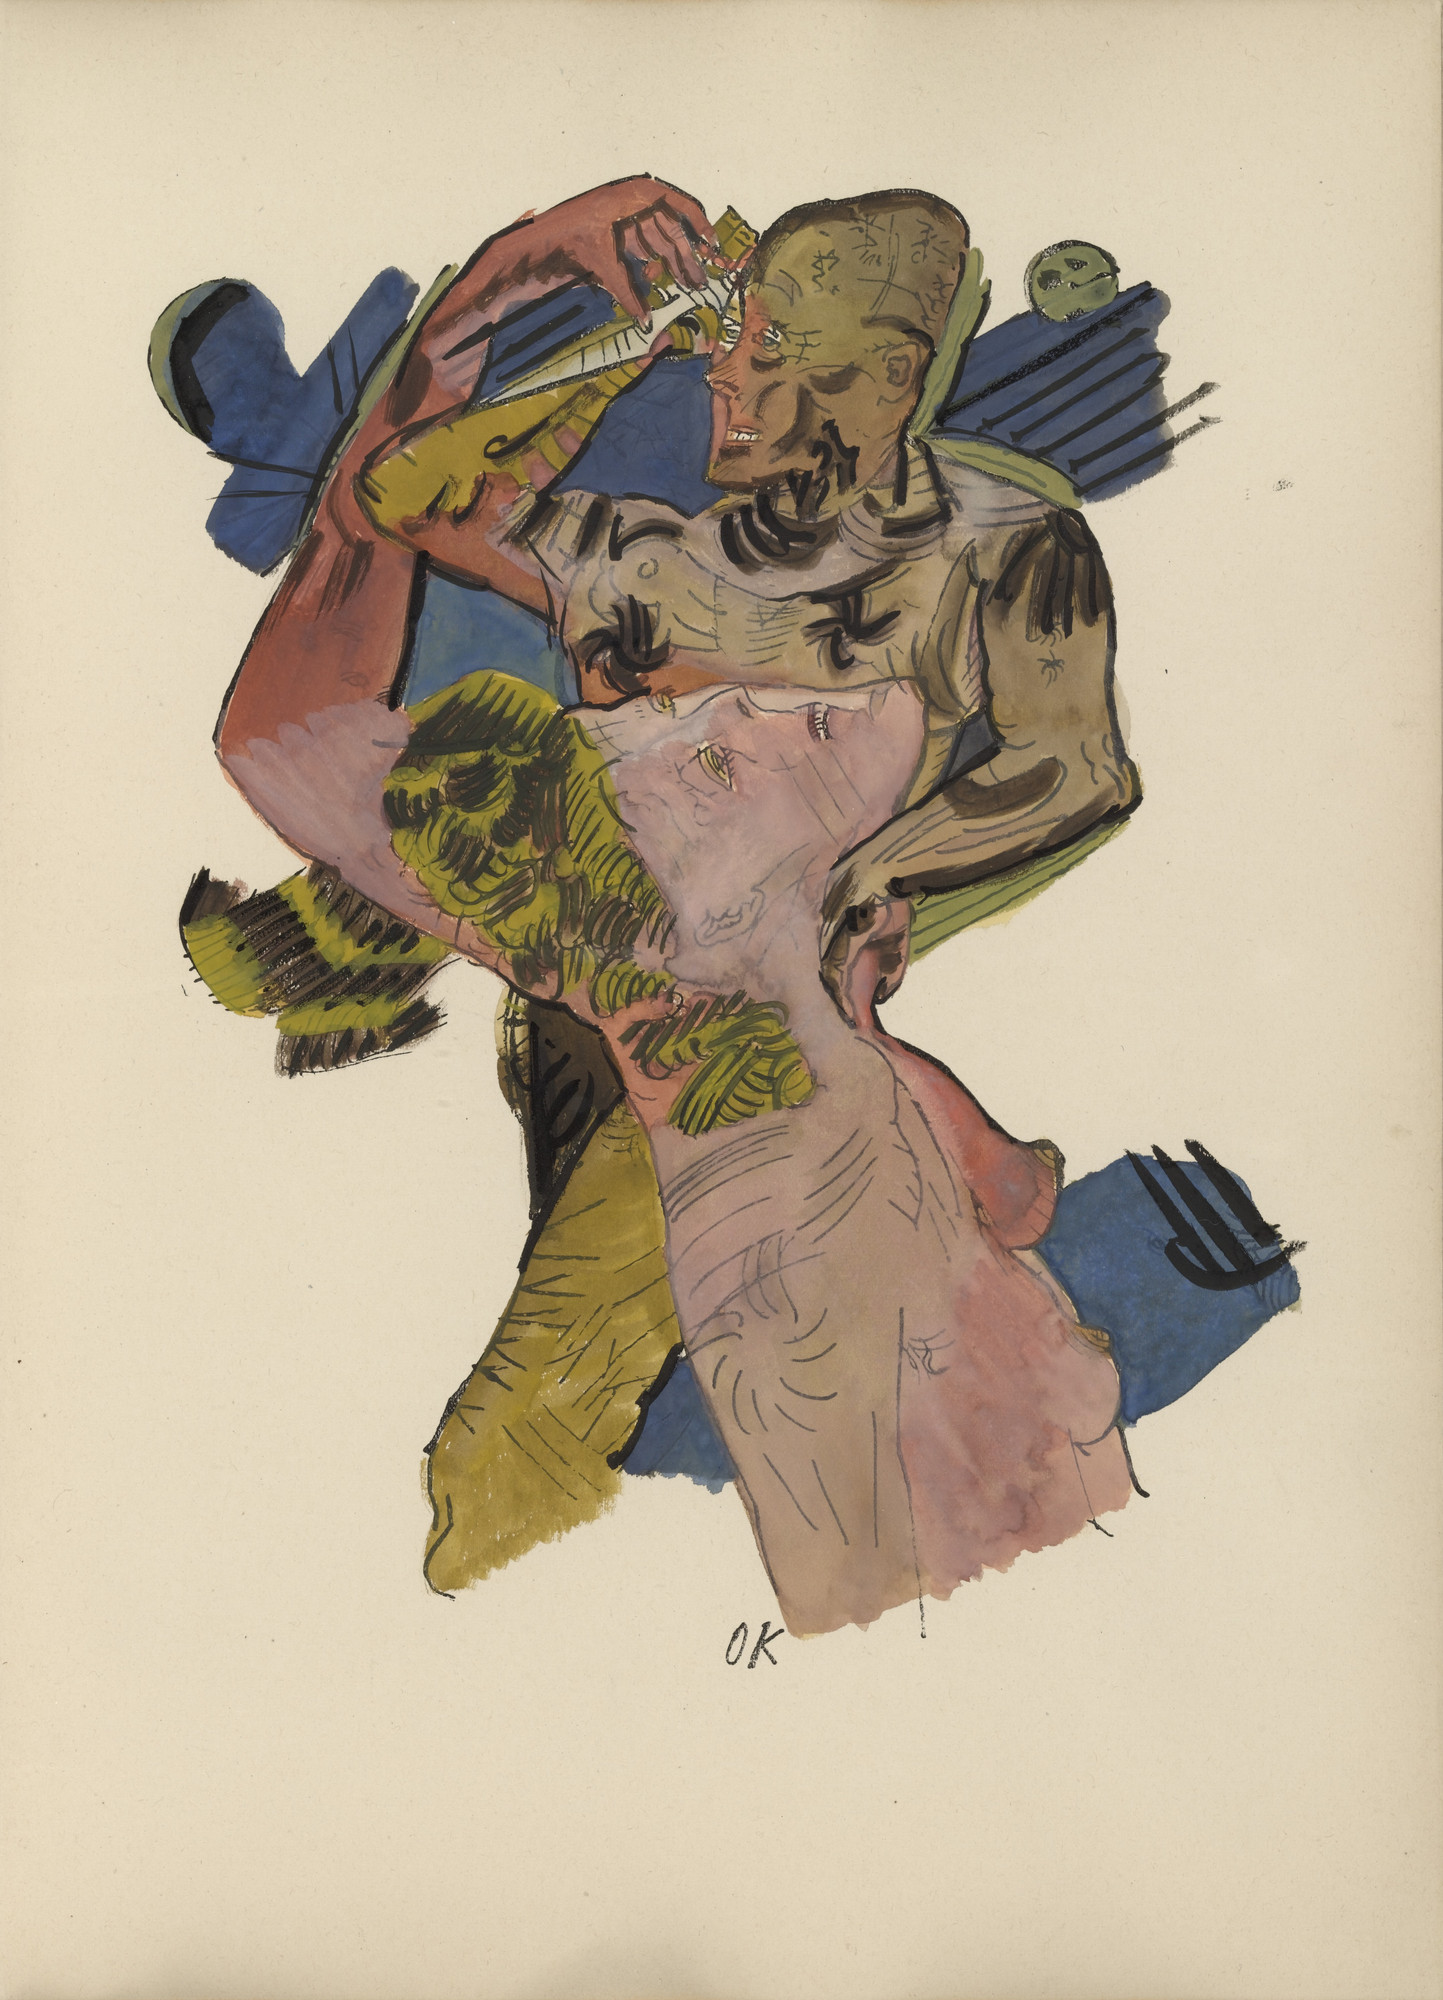 Oskar Kokoschka. Plate (folio 10) from Mörder, Hoffnung der Frauen (Murderer, Hope of Women). (1916)